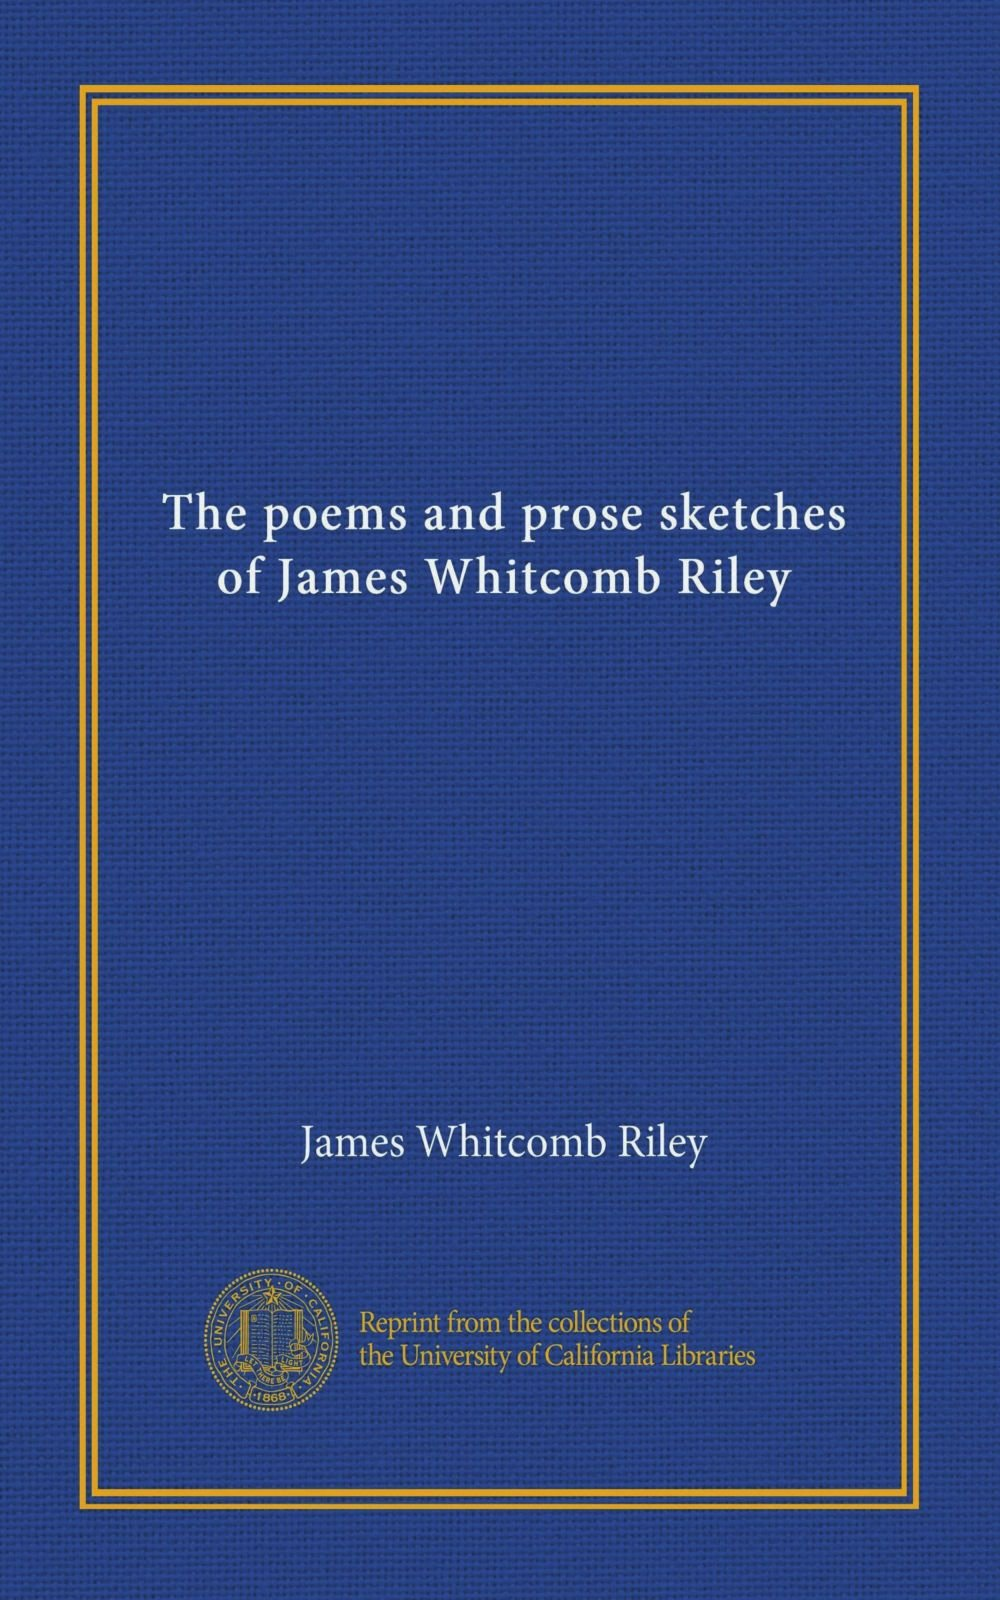 The poems and prose sketches of James Whitcomb Riley (v.13)